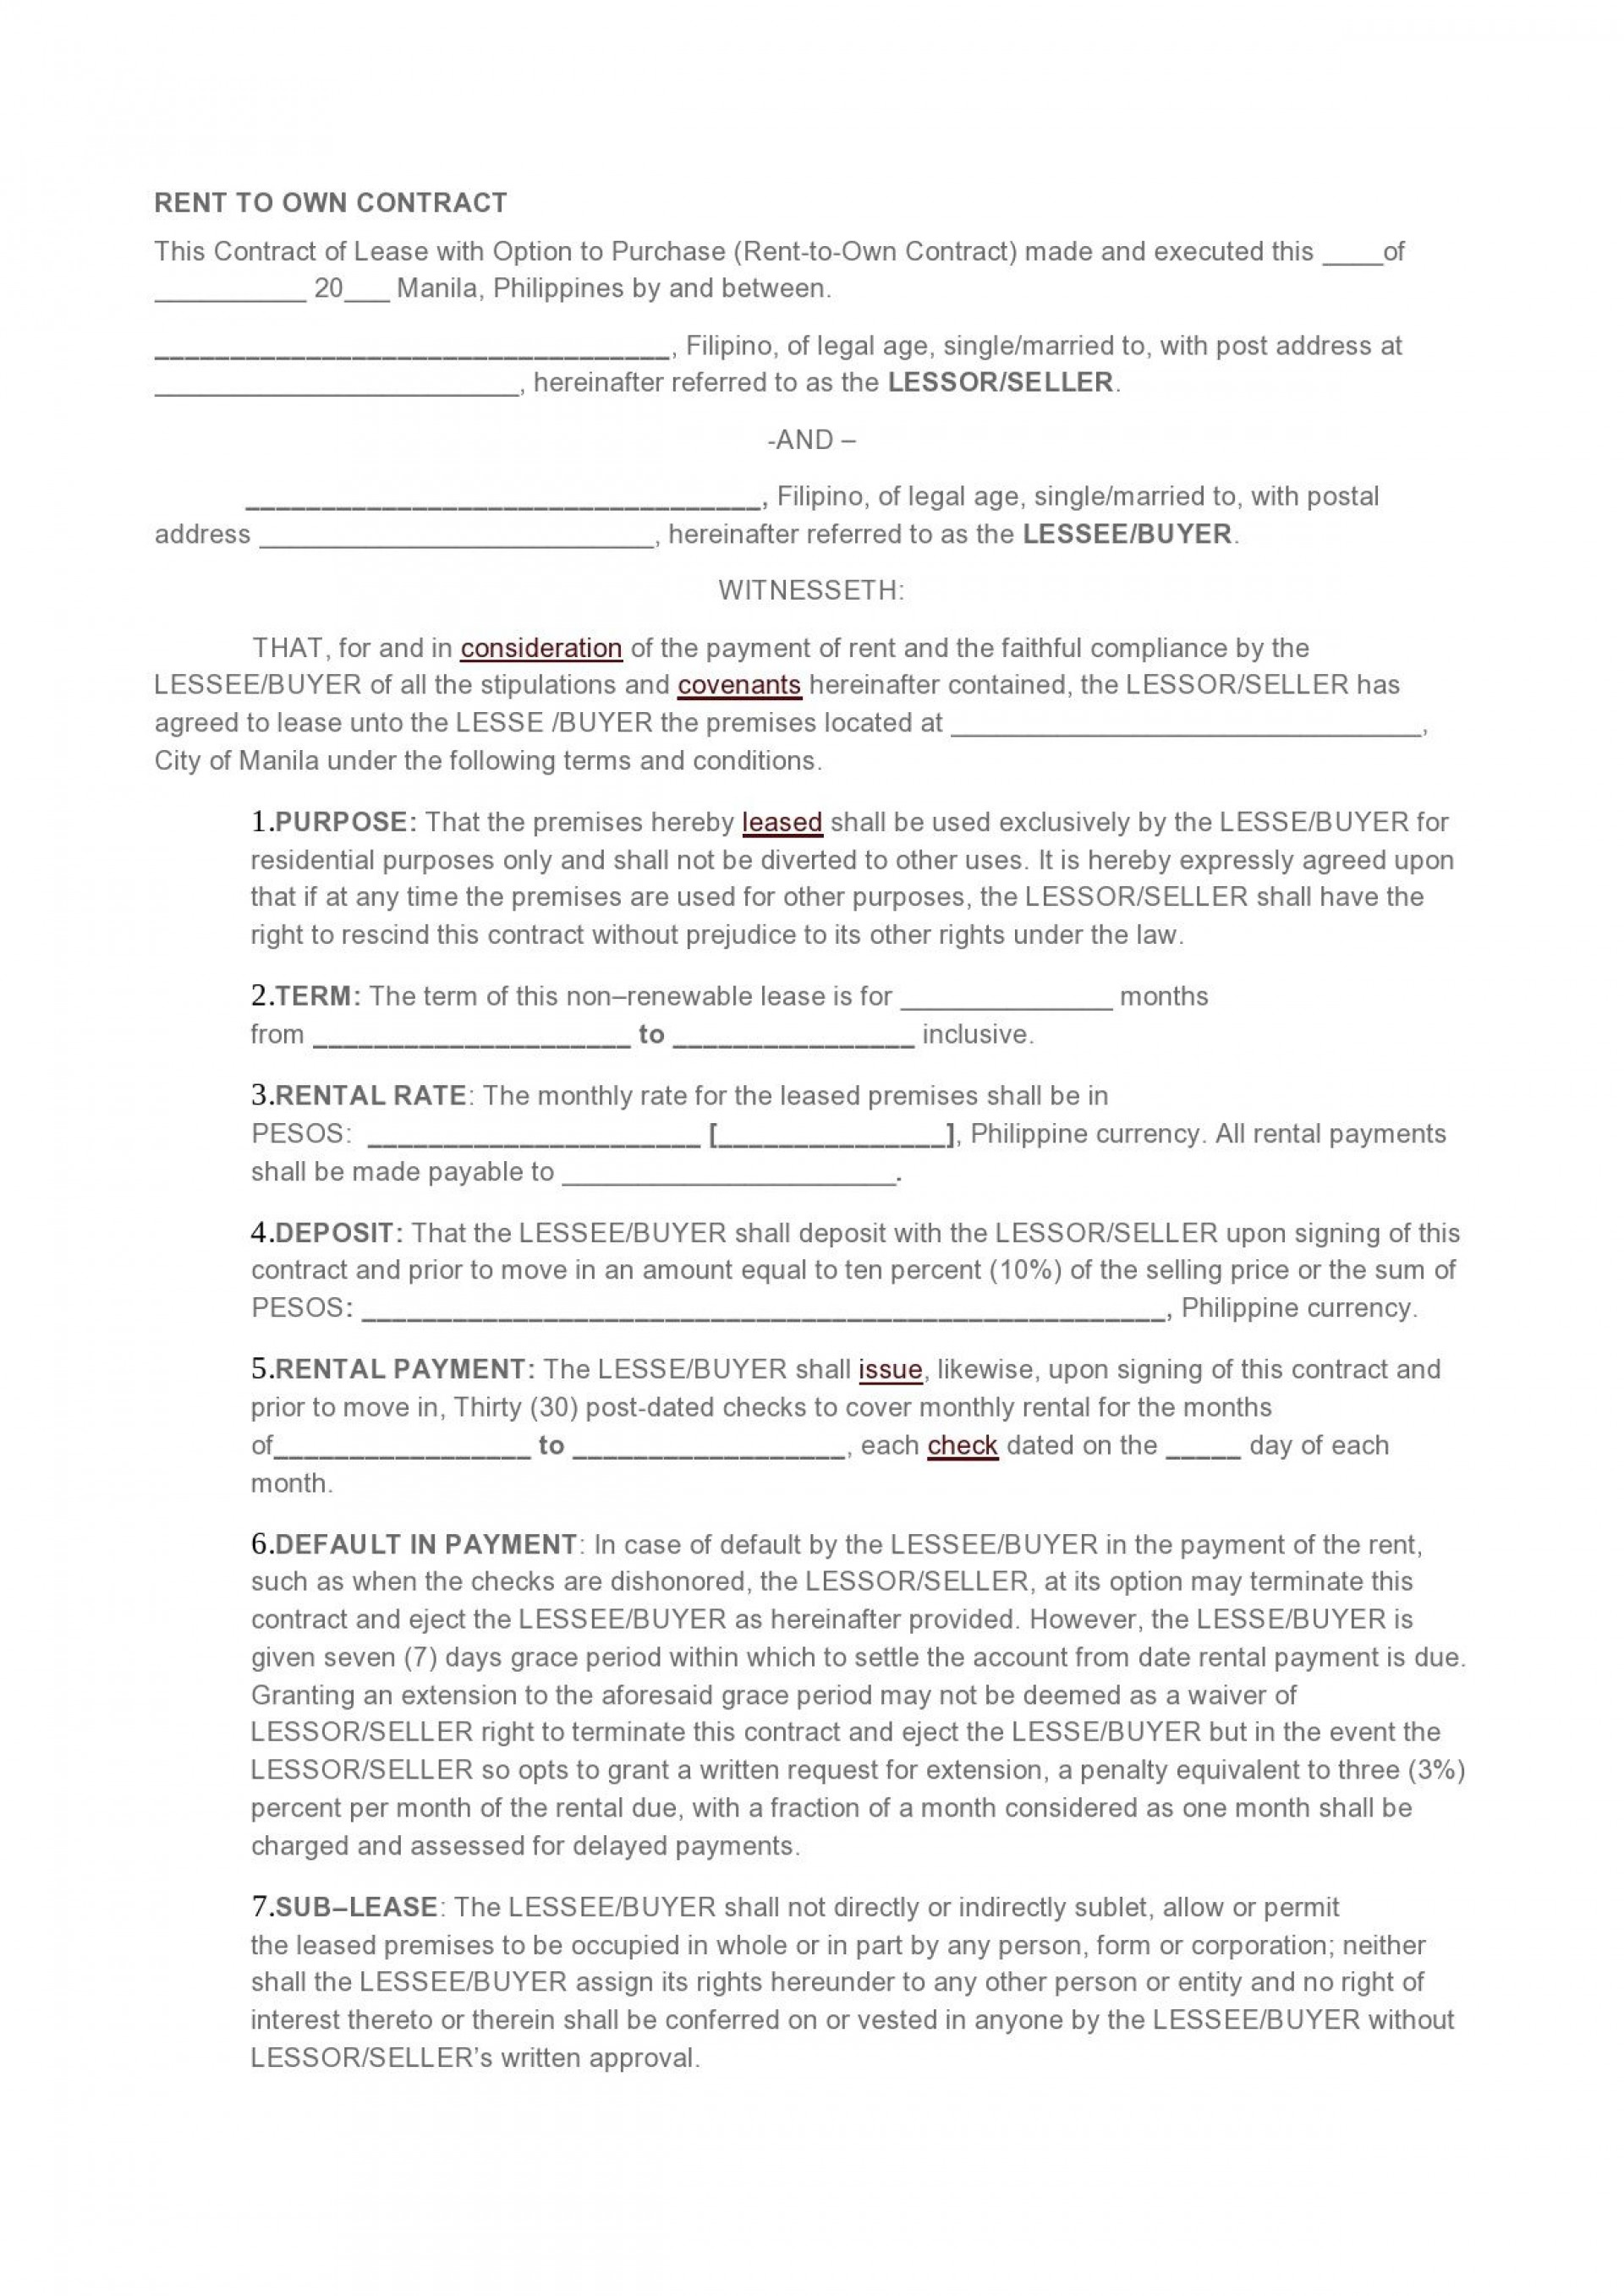 003 Awful Rent To Own Lease Template High Resolution  Example Agreement Alberta1920